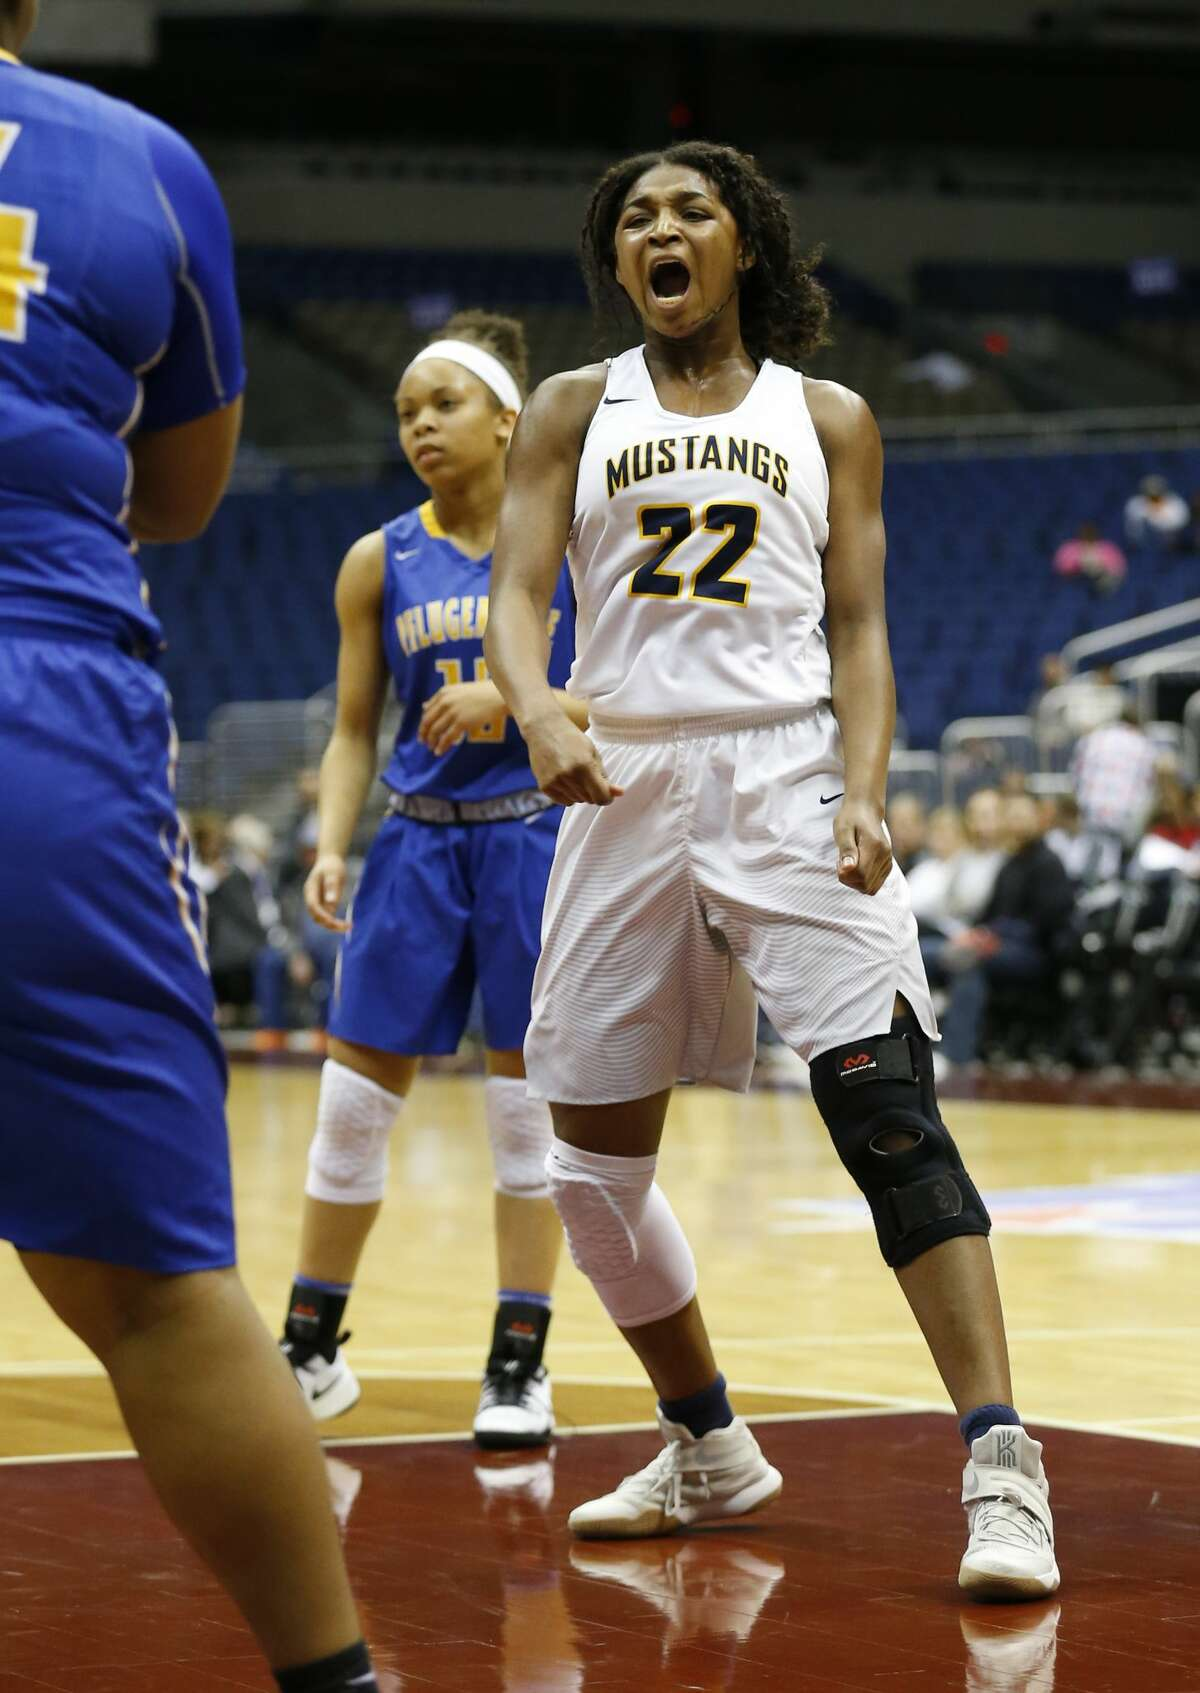 Houston Cypress Ranch?'s Jala Buster (22) reacts after getting fouled on a score against Pflugerville in the UIL Girls Class 6A State Semifinal basketball game at the Alamodome in San Antonio on Friday, Mar. 3, 2017. Houston Cypress Ranch defeated Pflugerville, 70-53. (Kin Man Hui/San Antonio Express-News)